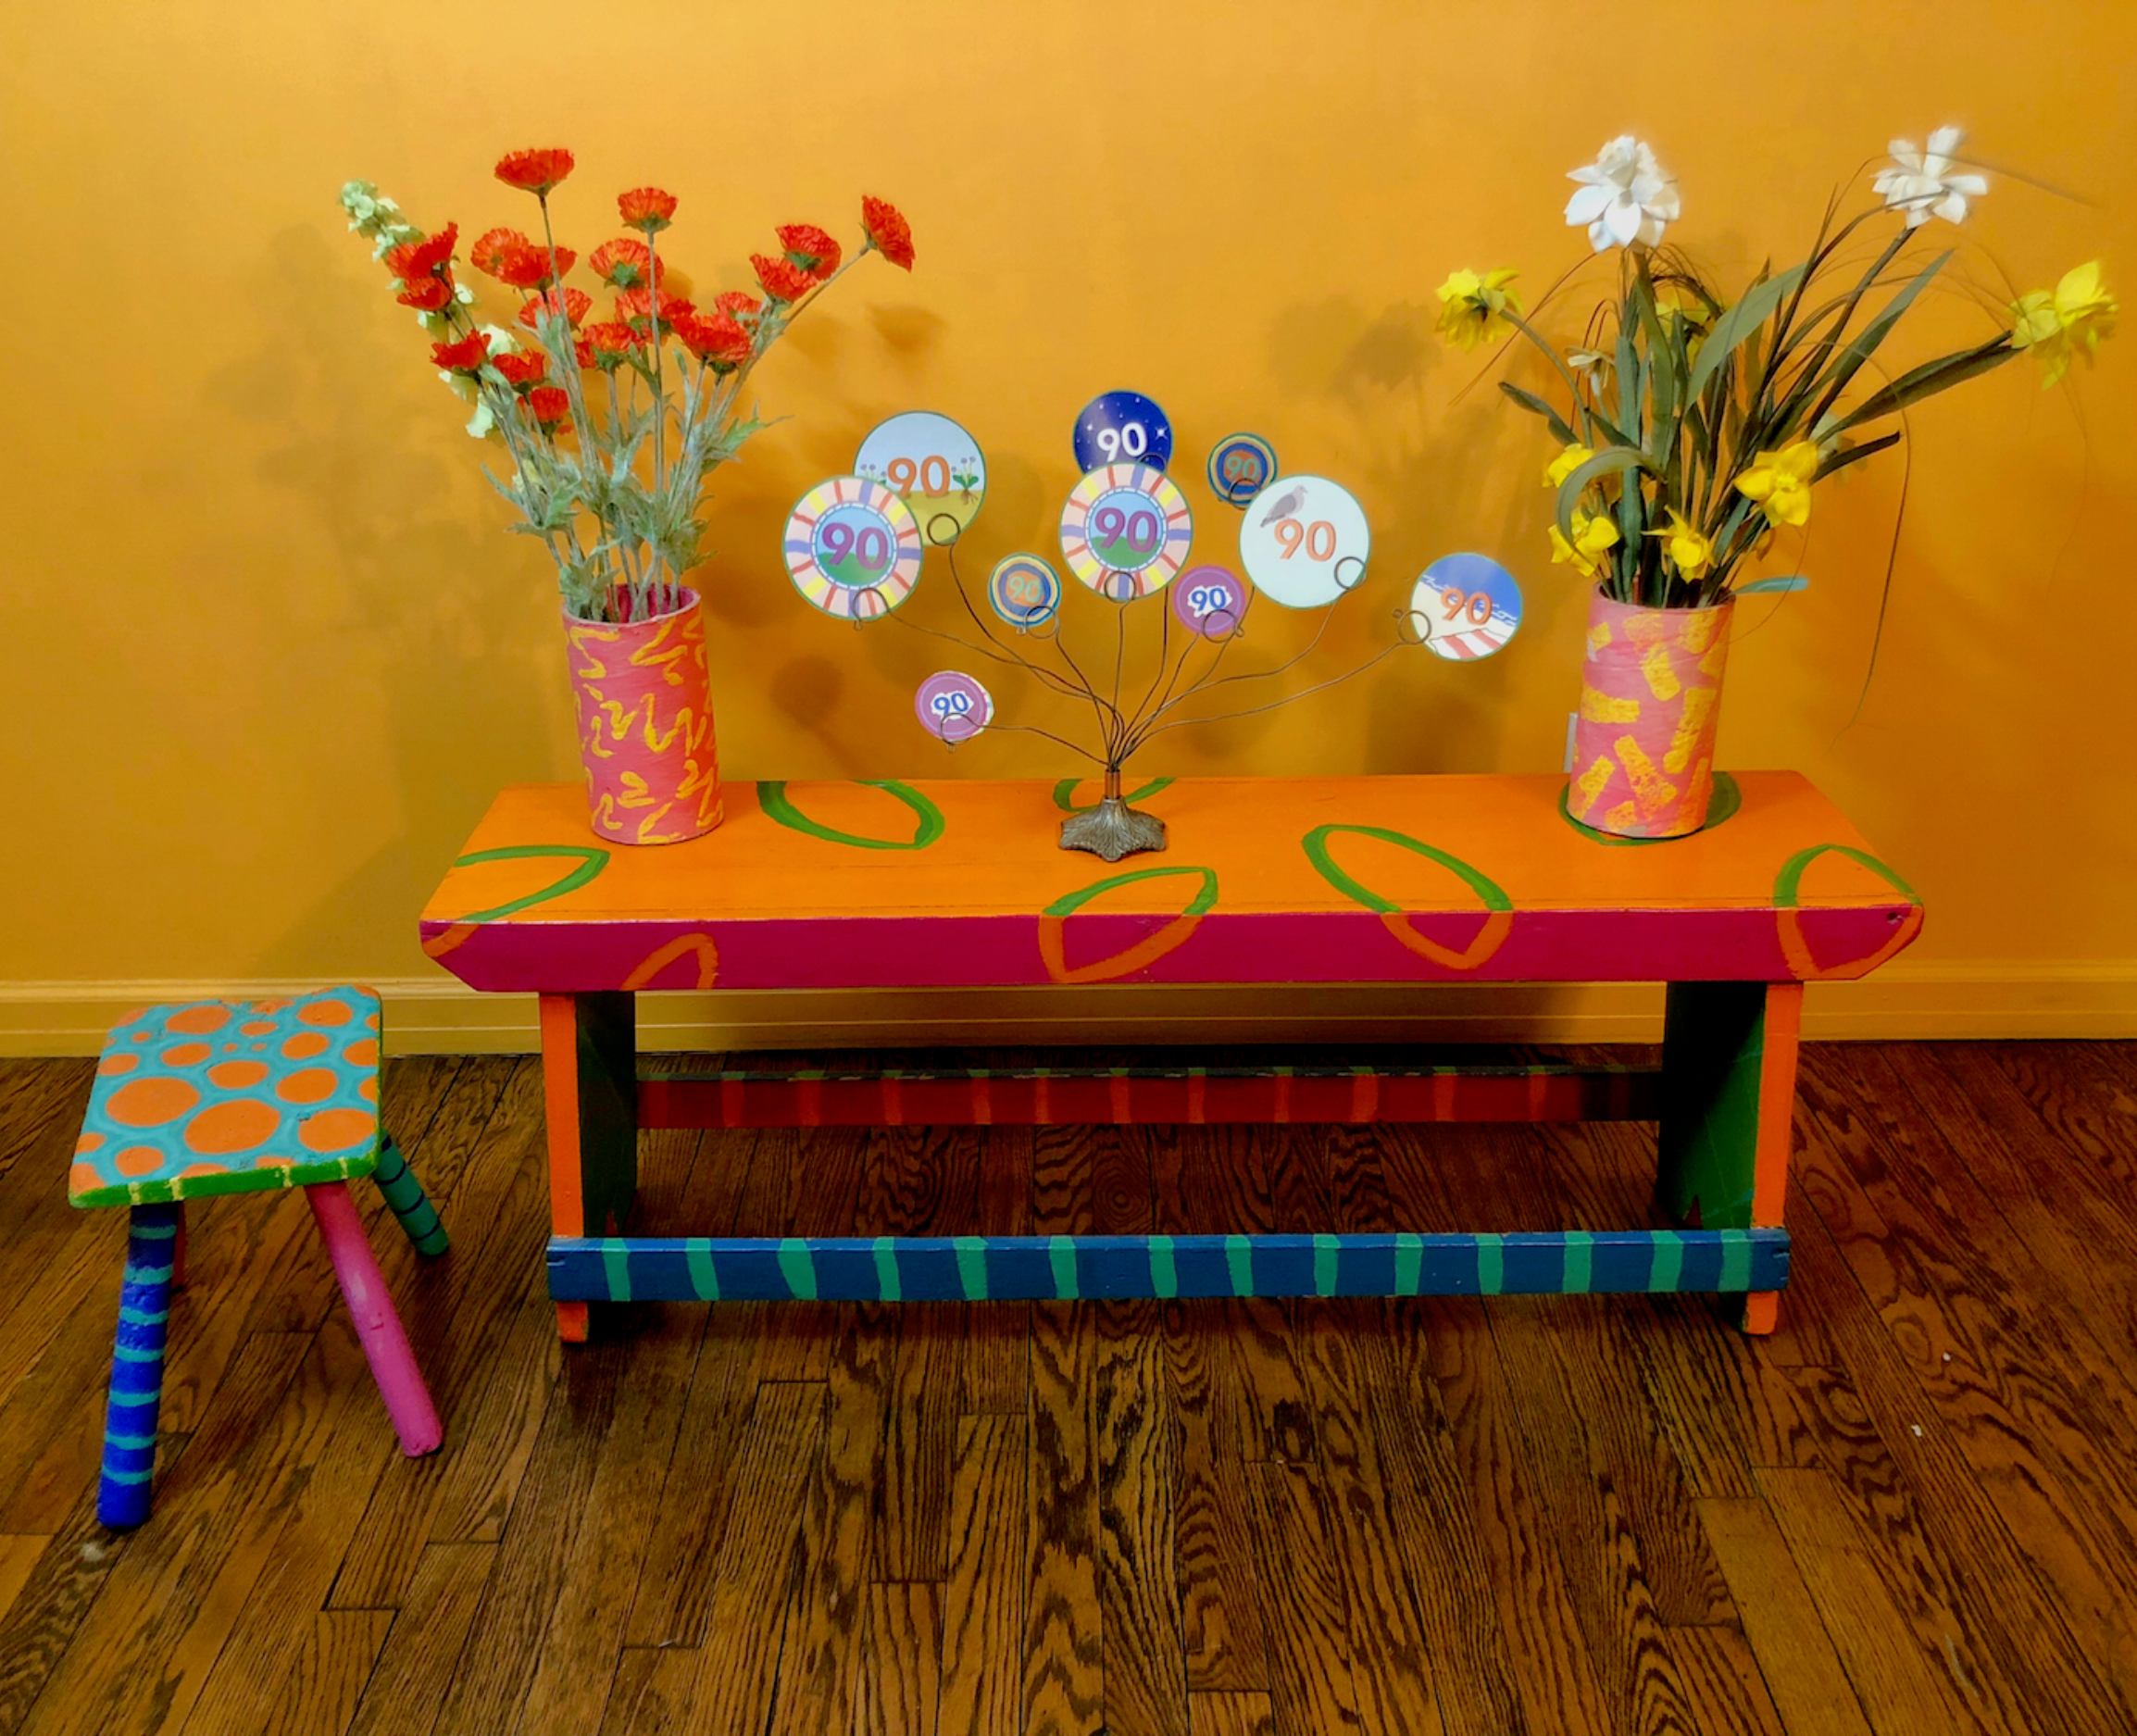 Paper Numbers, Painted Vases and Furniture by Jane Aaron